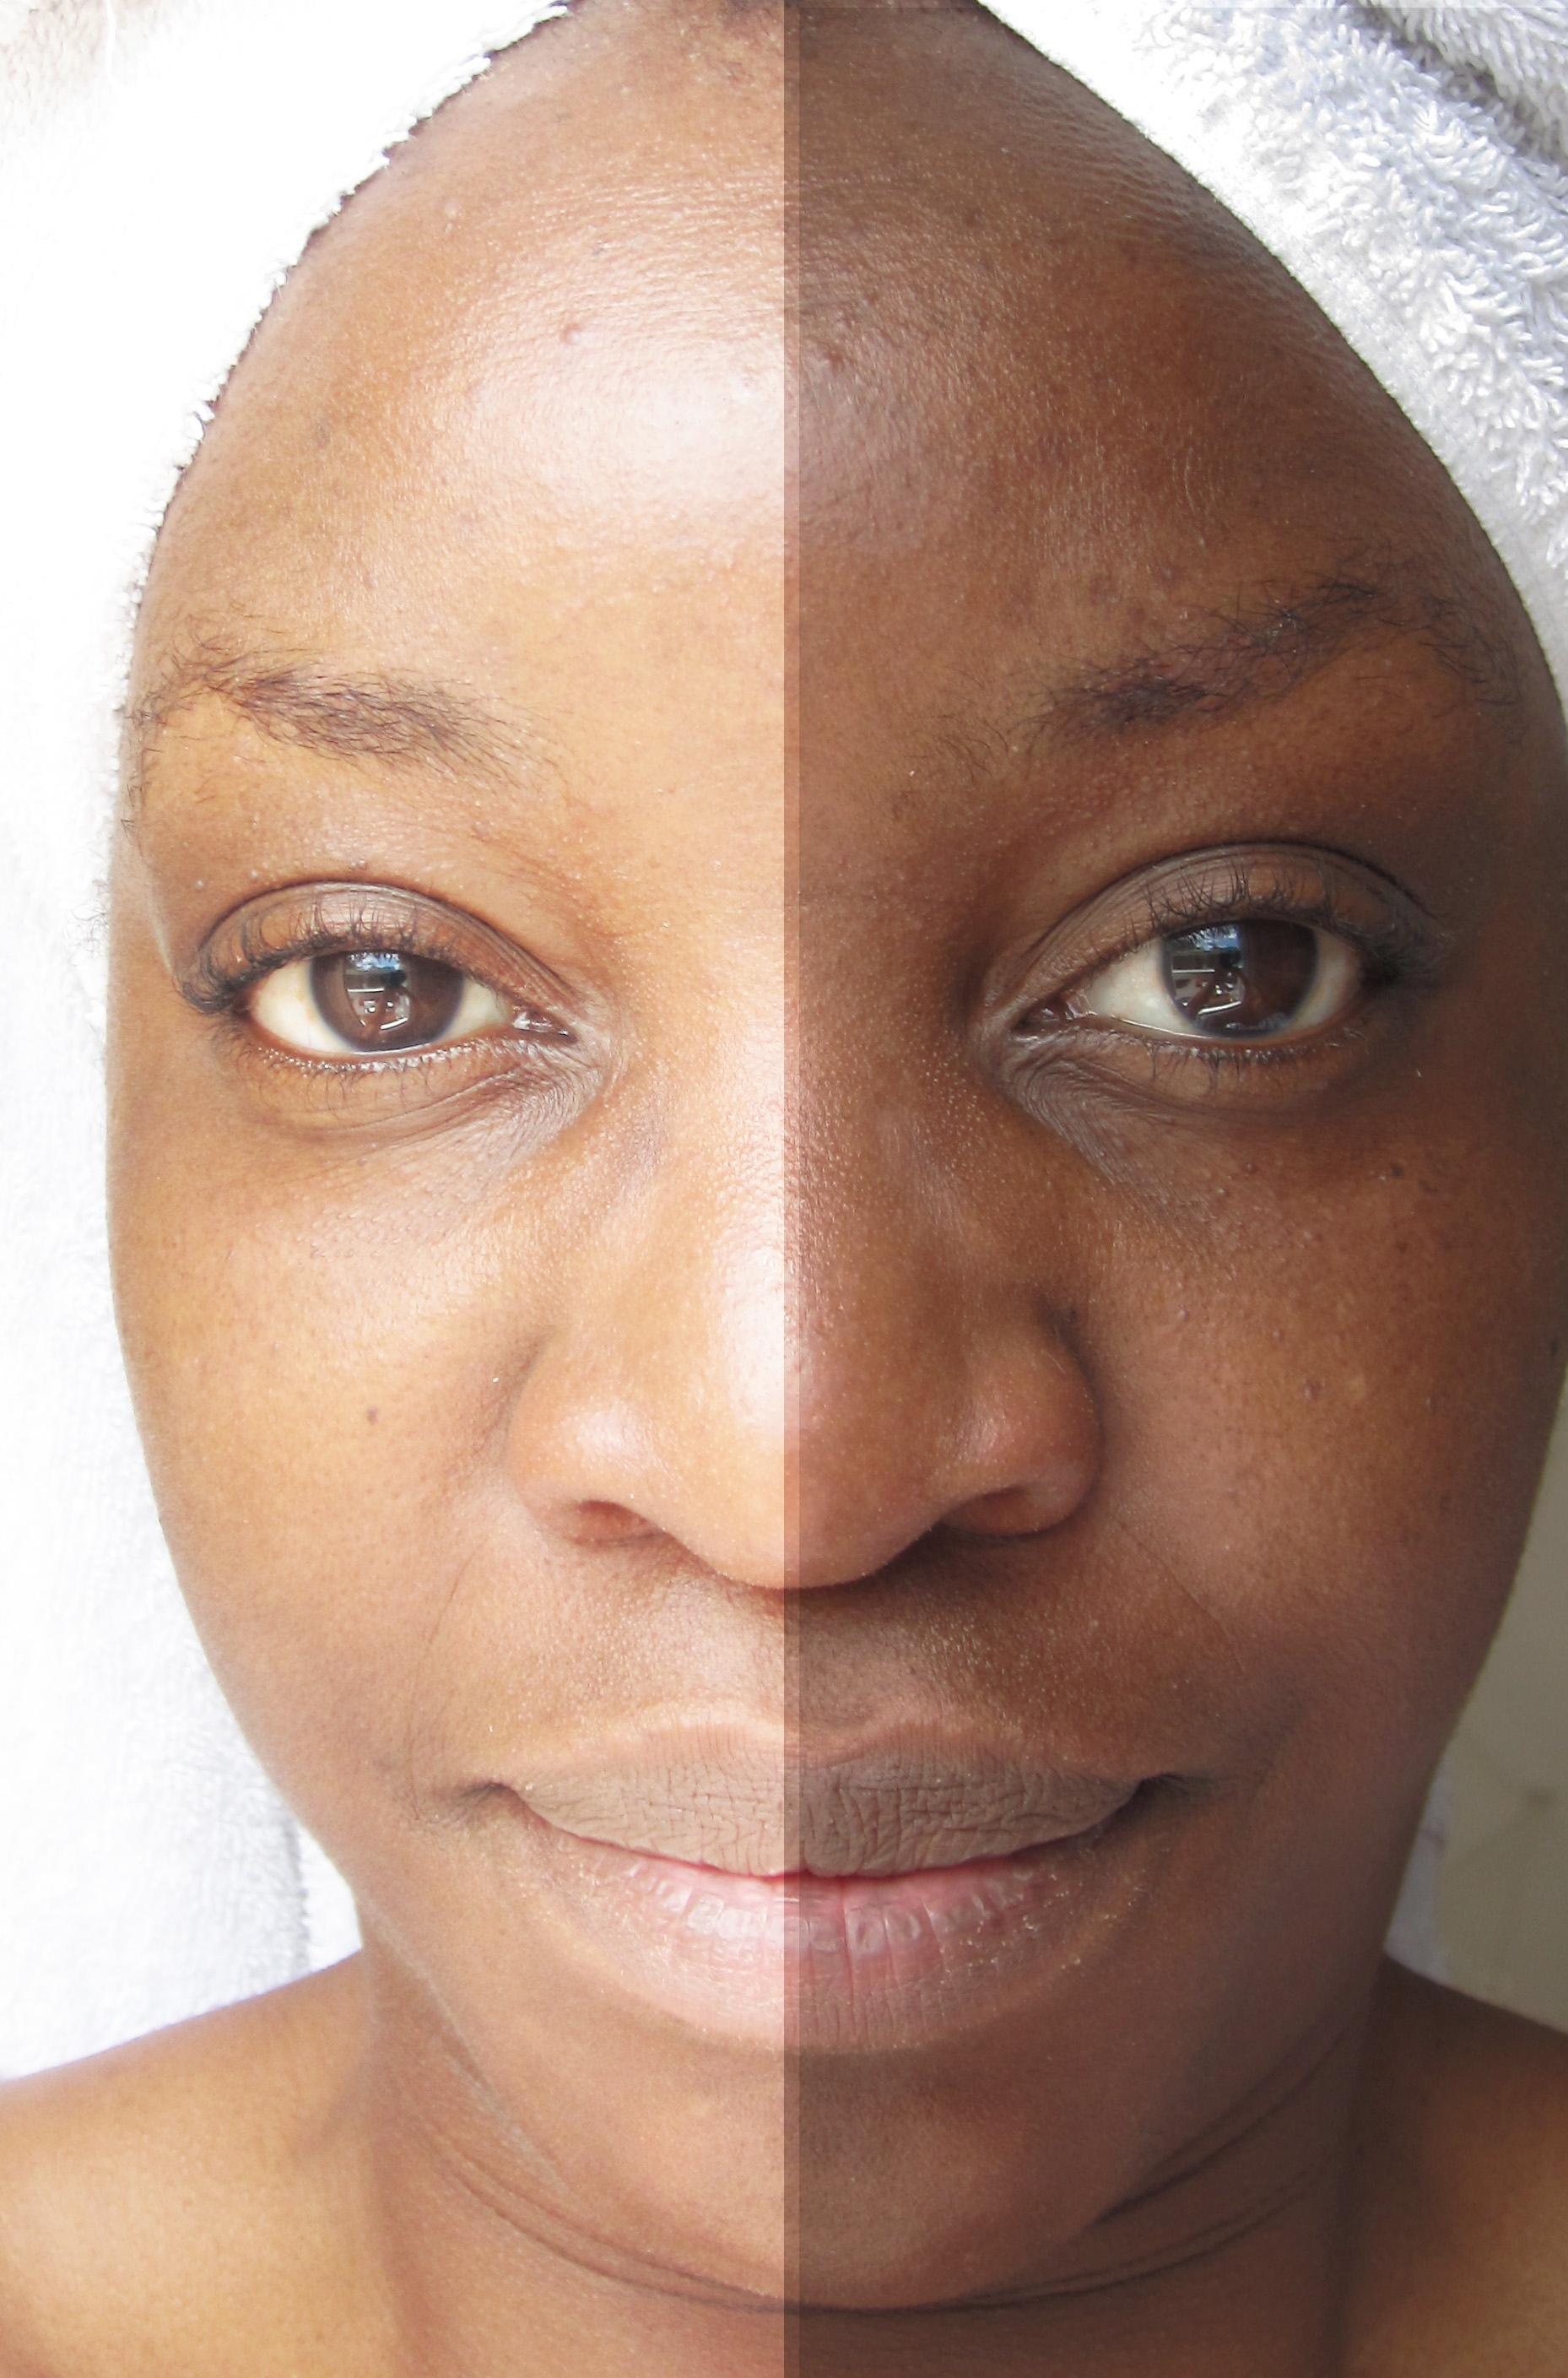 Hyperpigmentation black Skin: Cause and Treatment | BLACK